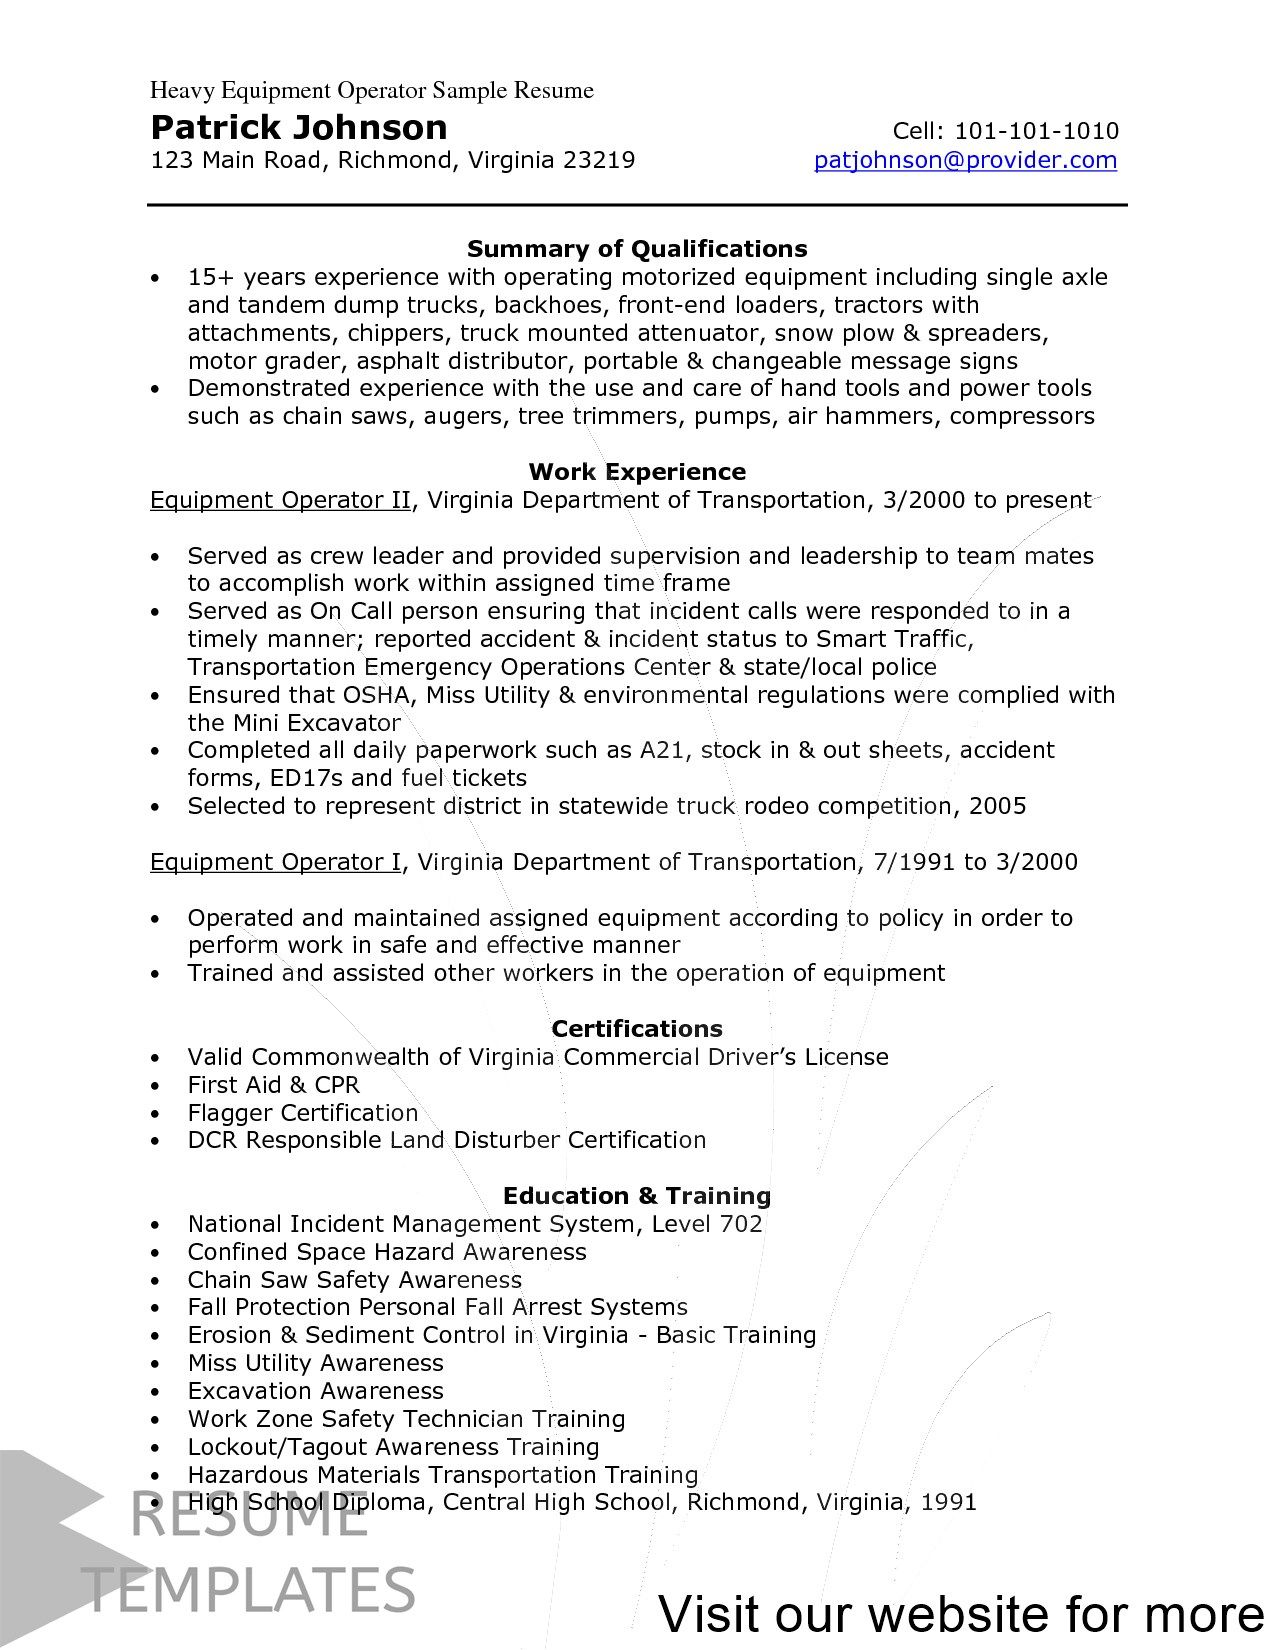 resume template reddit Professional in 2020 (With images